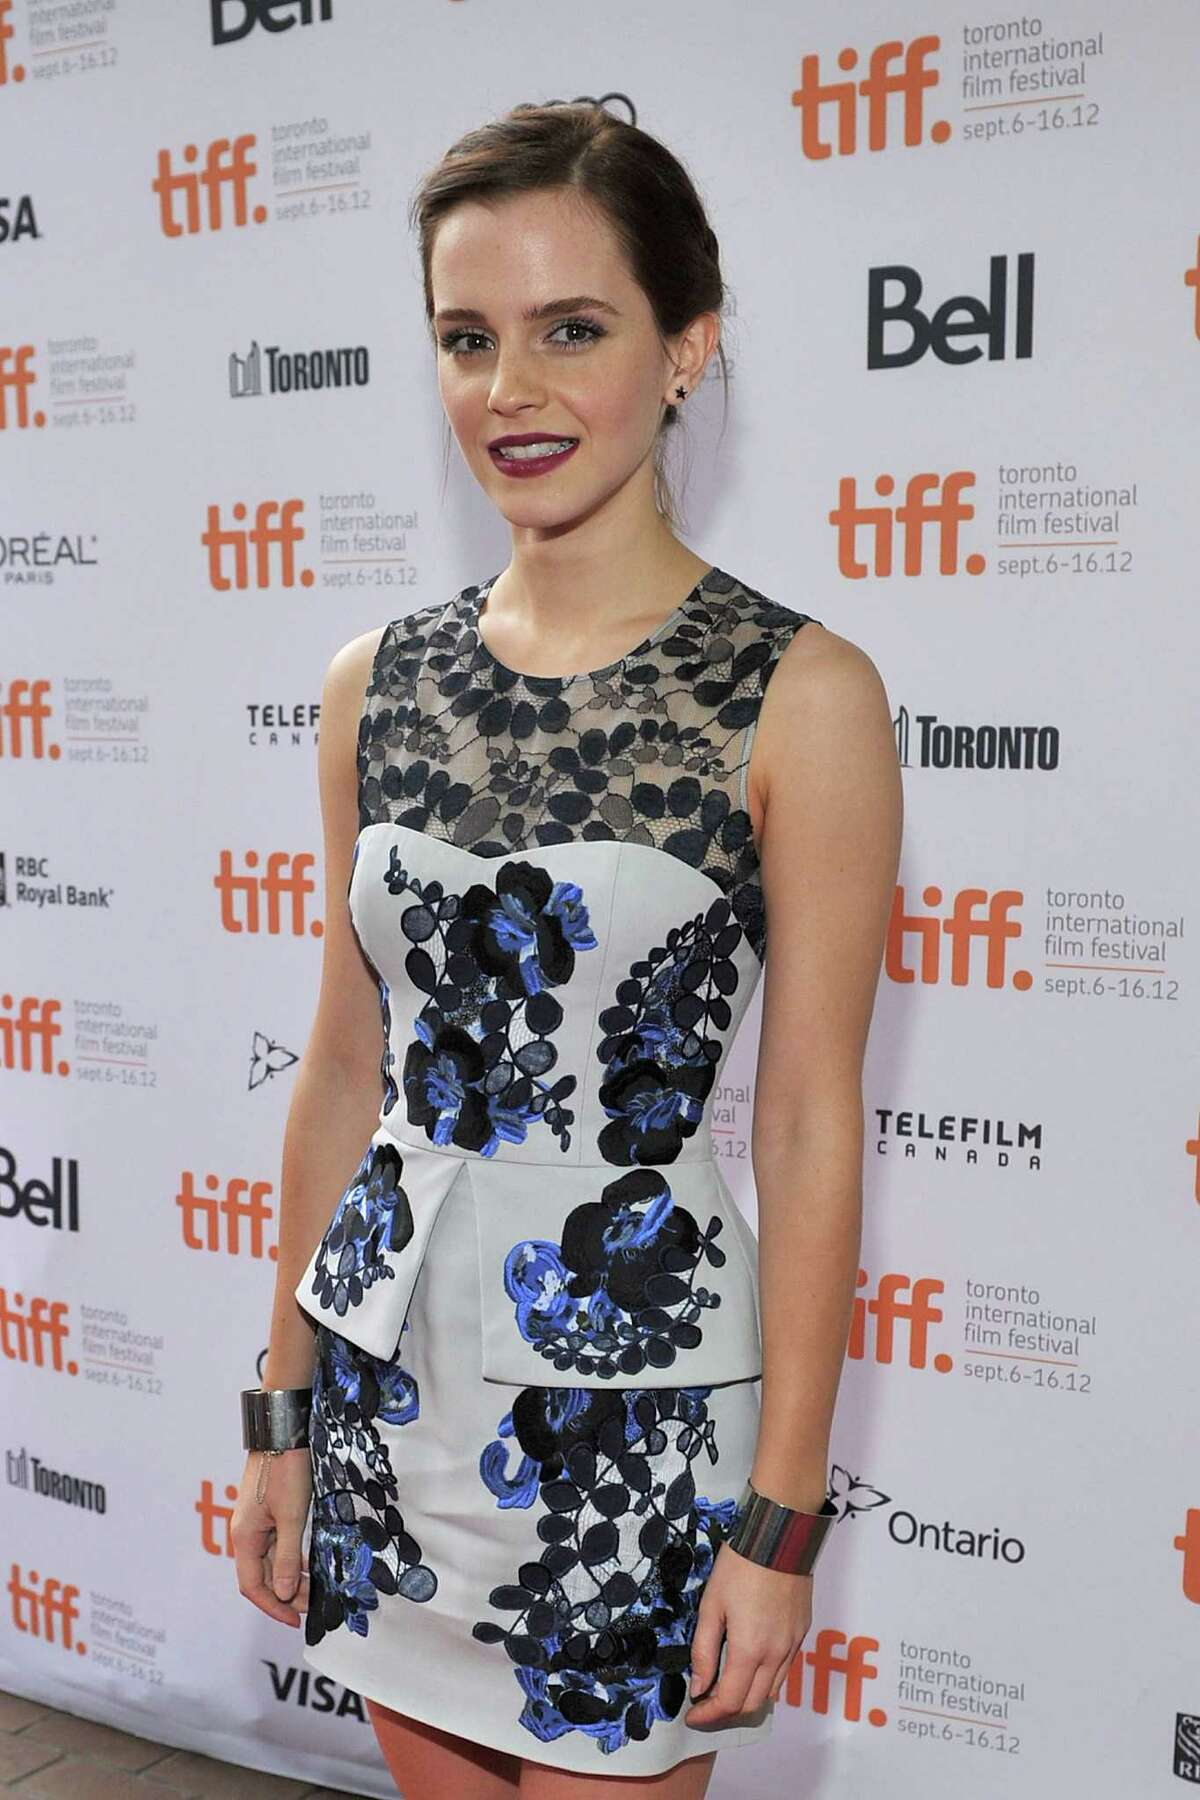 """TORONTO, ON - SEPTEMBER 08: Actress Emma Watson attends """"The Perks Of Being A Wallflower"""" premiere during the 2012 Toronto International Film Festival at Ryerson Theatre on September 8, 2012 in Toronto, Canada. (Photo by Sonia Recchia/Getty Images)"""